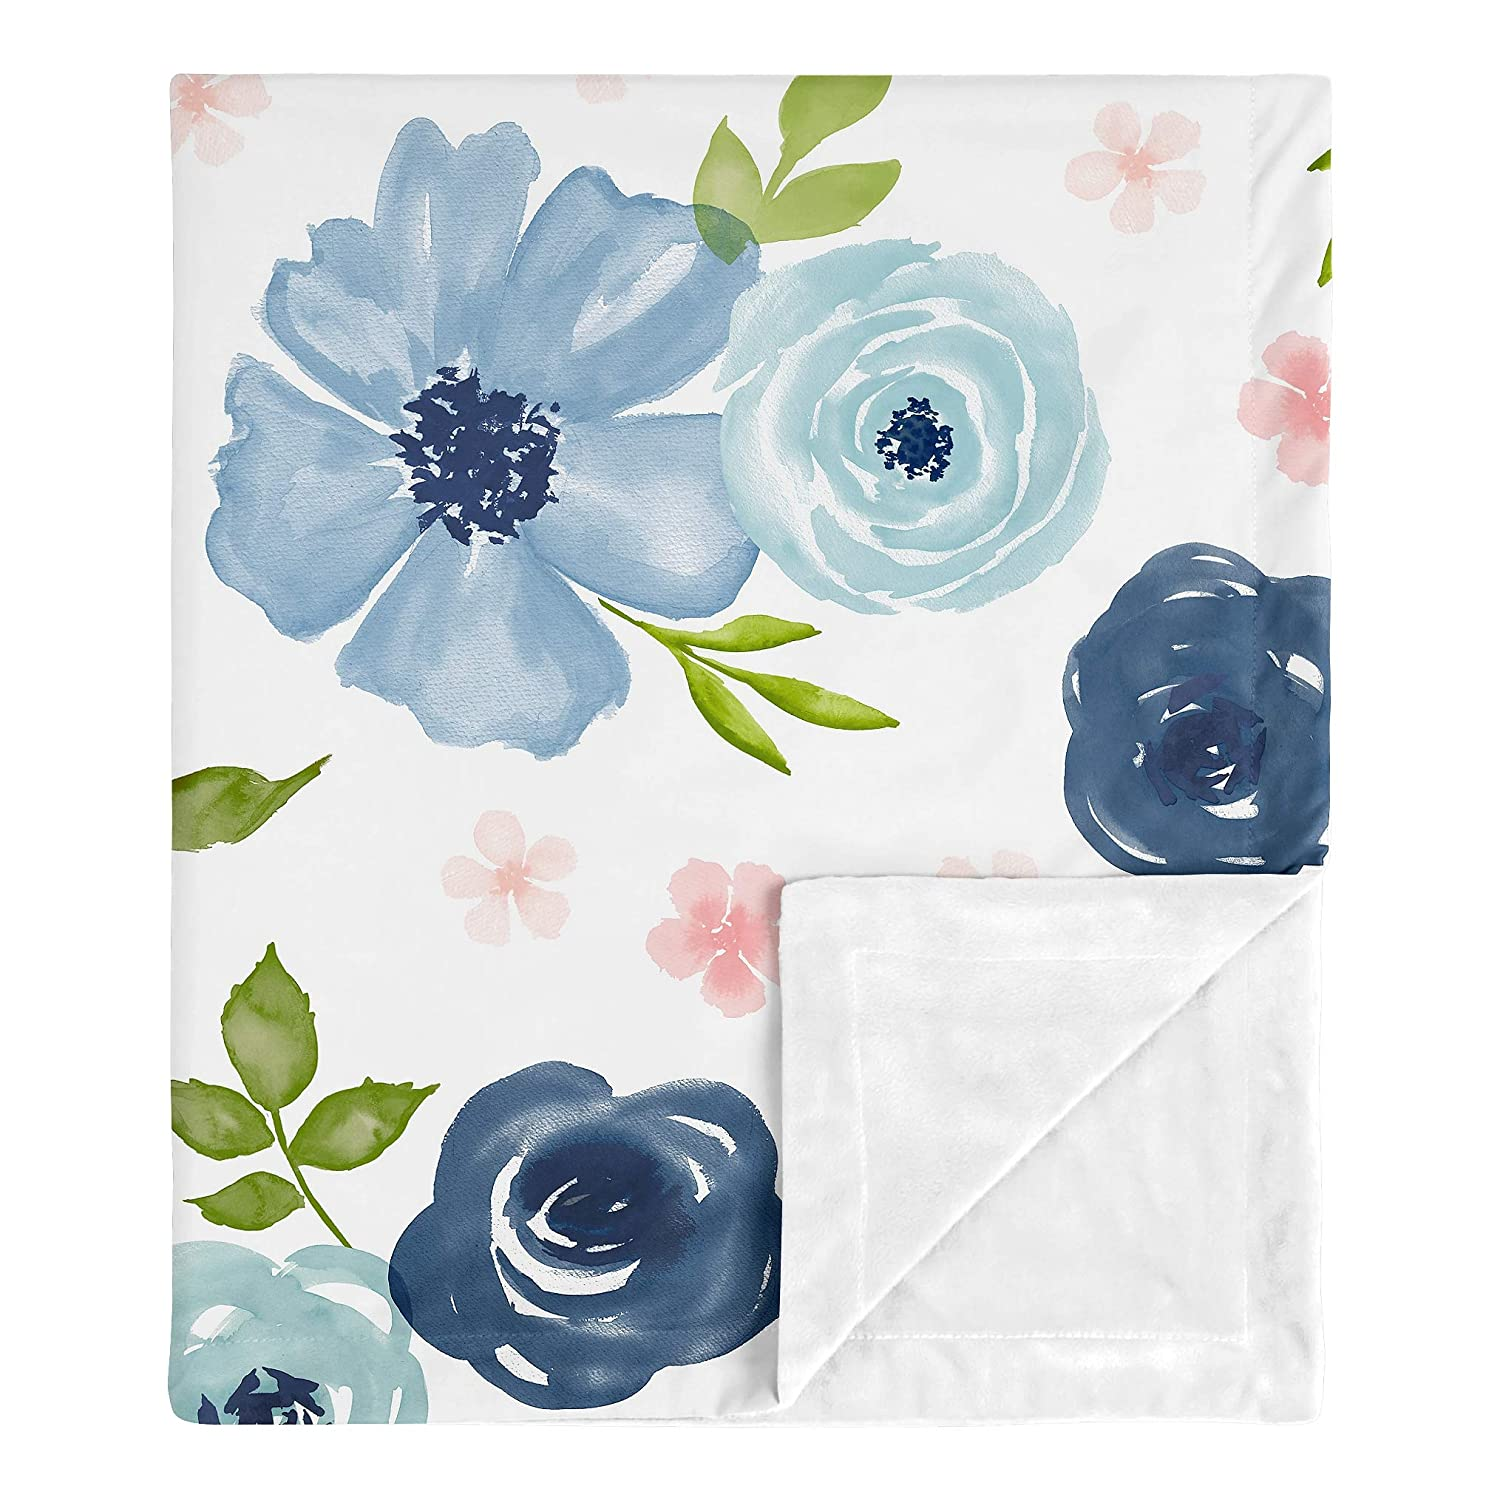 Sweet Jojo Designs Navy Blue and Pink Watercolor Floral Baby Girl Receiving Security Swaddle Blanket for Newborn or Toddler Nursery Car Seat Stroller Soft Minky - Blush Green White Shabby Chic Flower